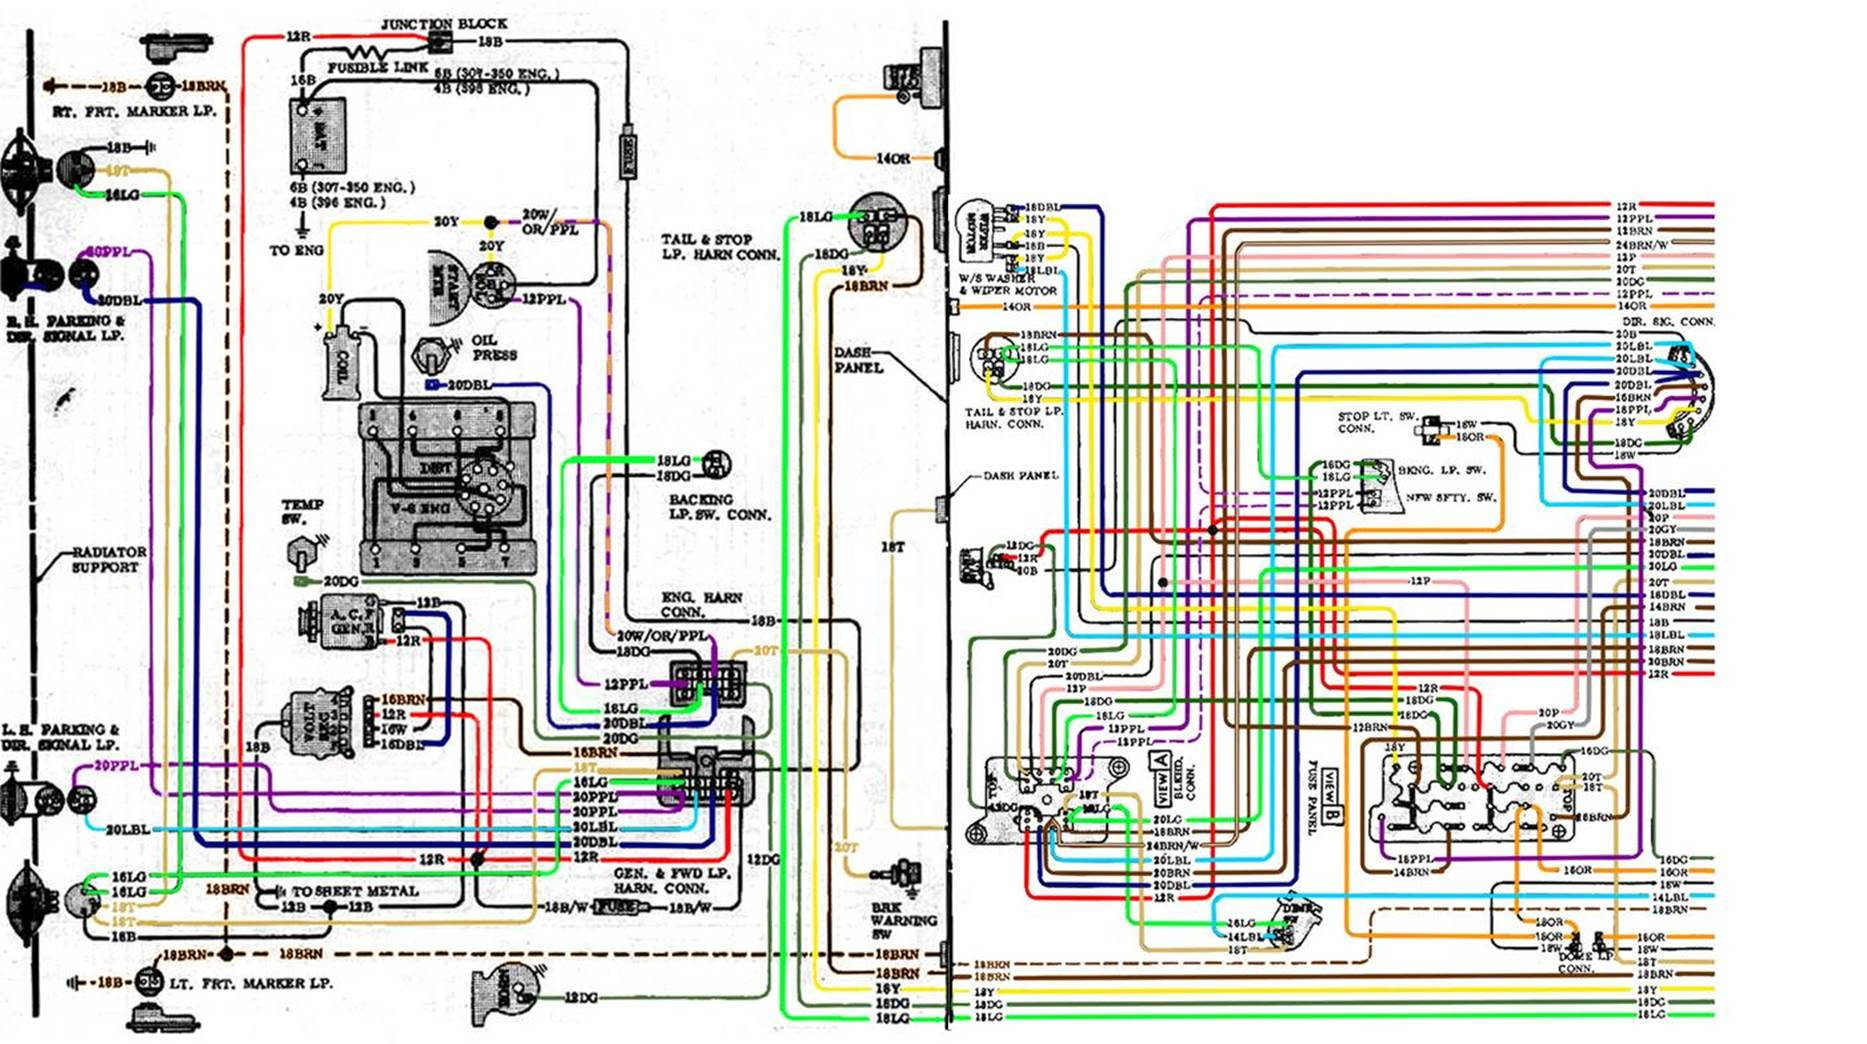 image002 67 72 chevy wiring diagram 1966 chevy impala wiring diagram at crackthecode.co